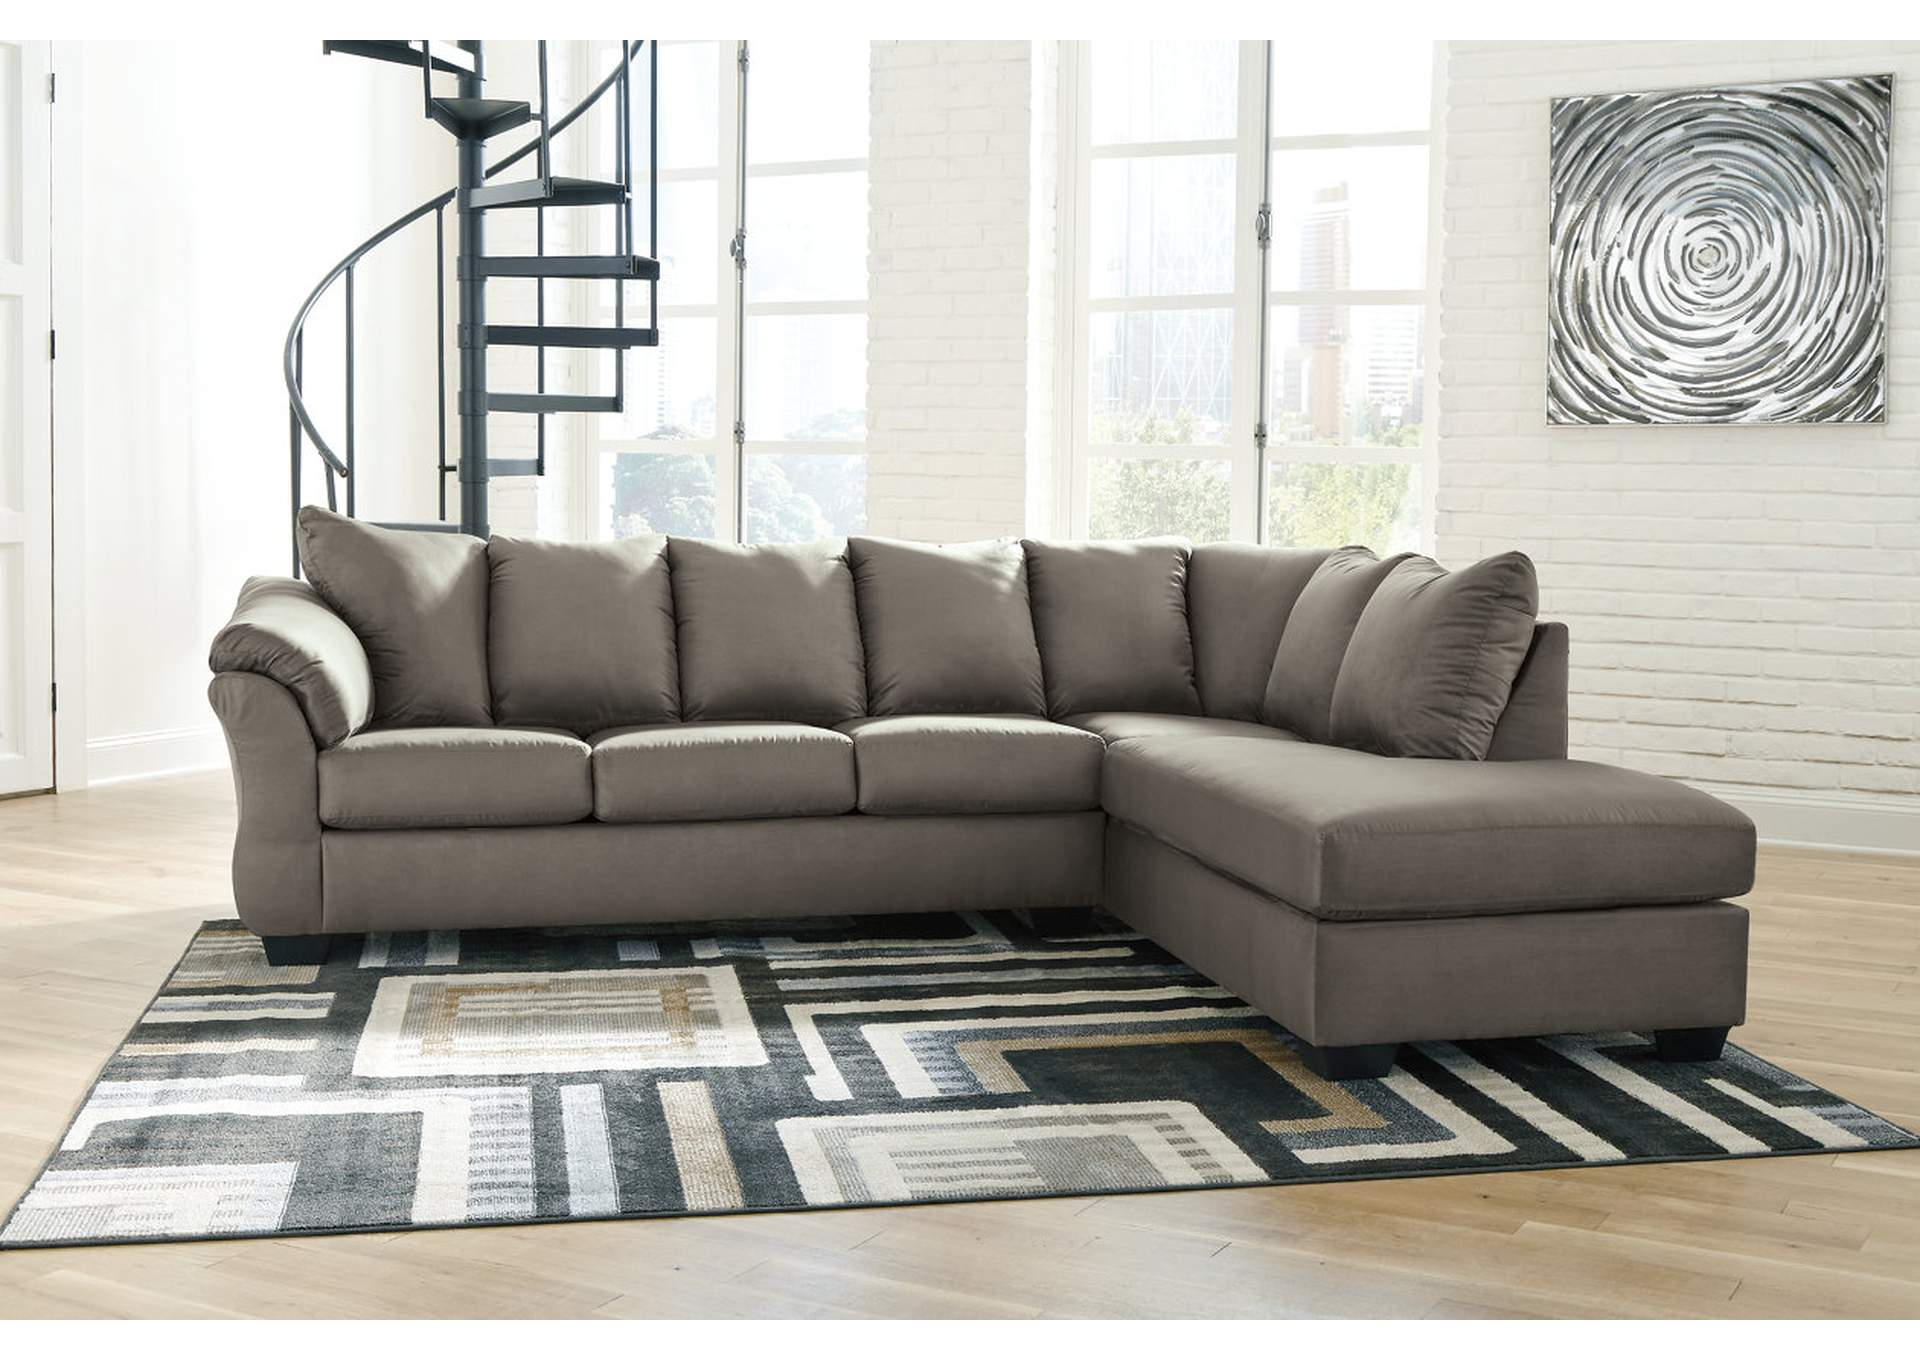 Darcy Cobblestone RAF Chaise Sectional,Signature Design By Ashley